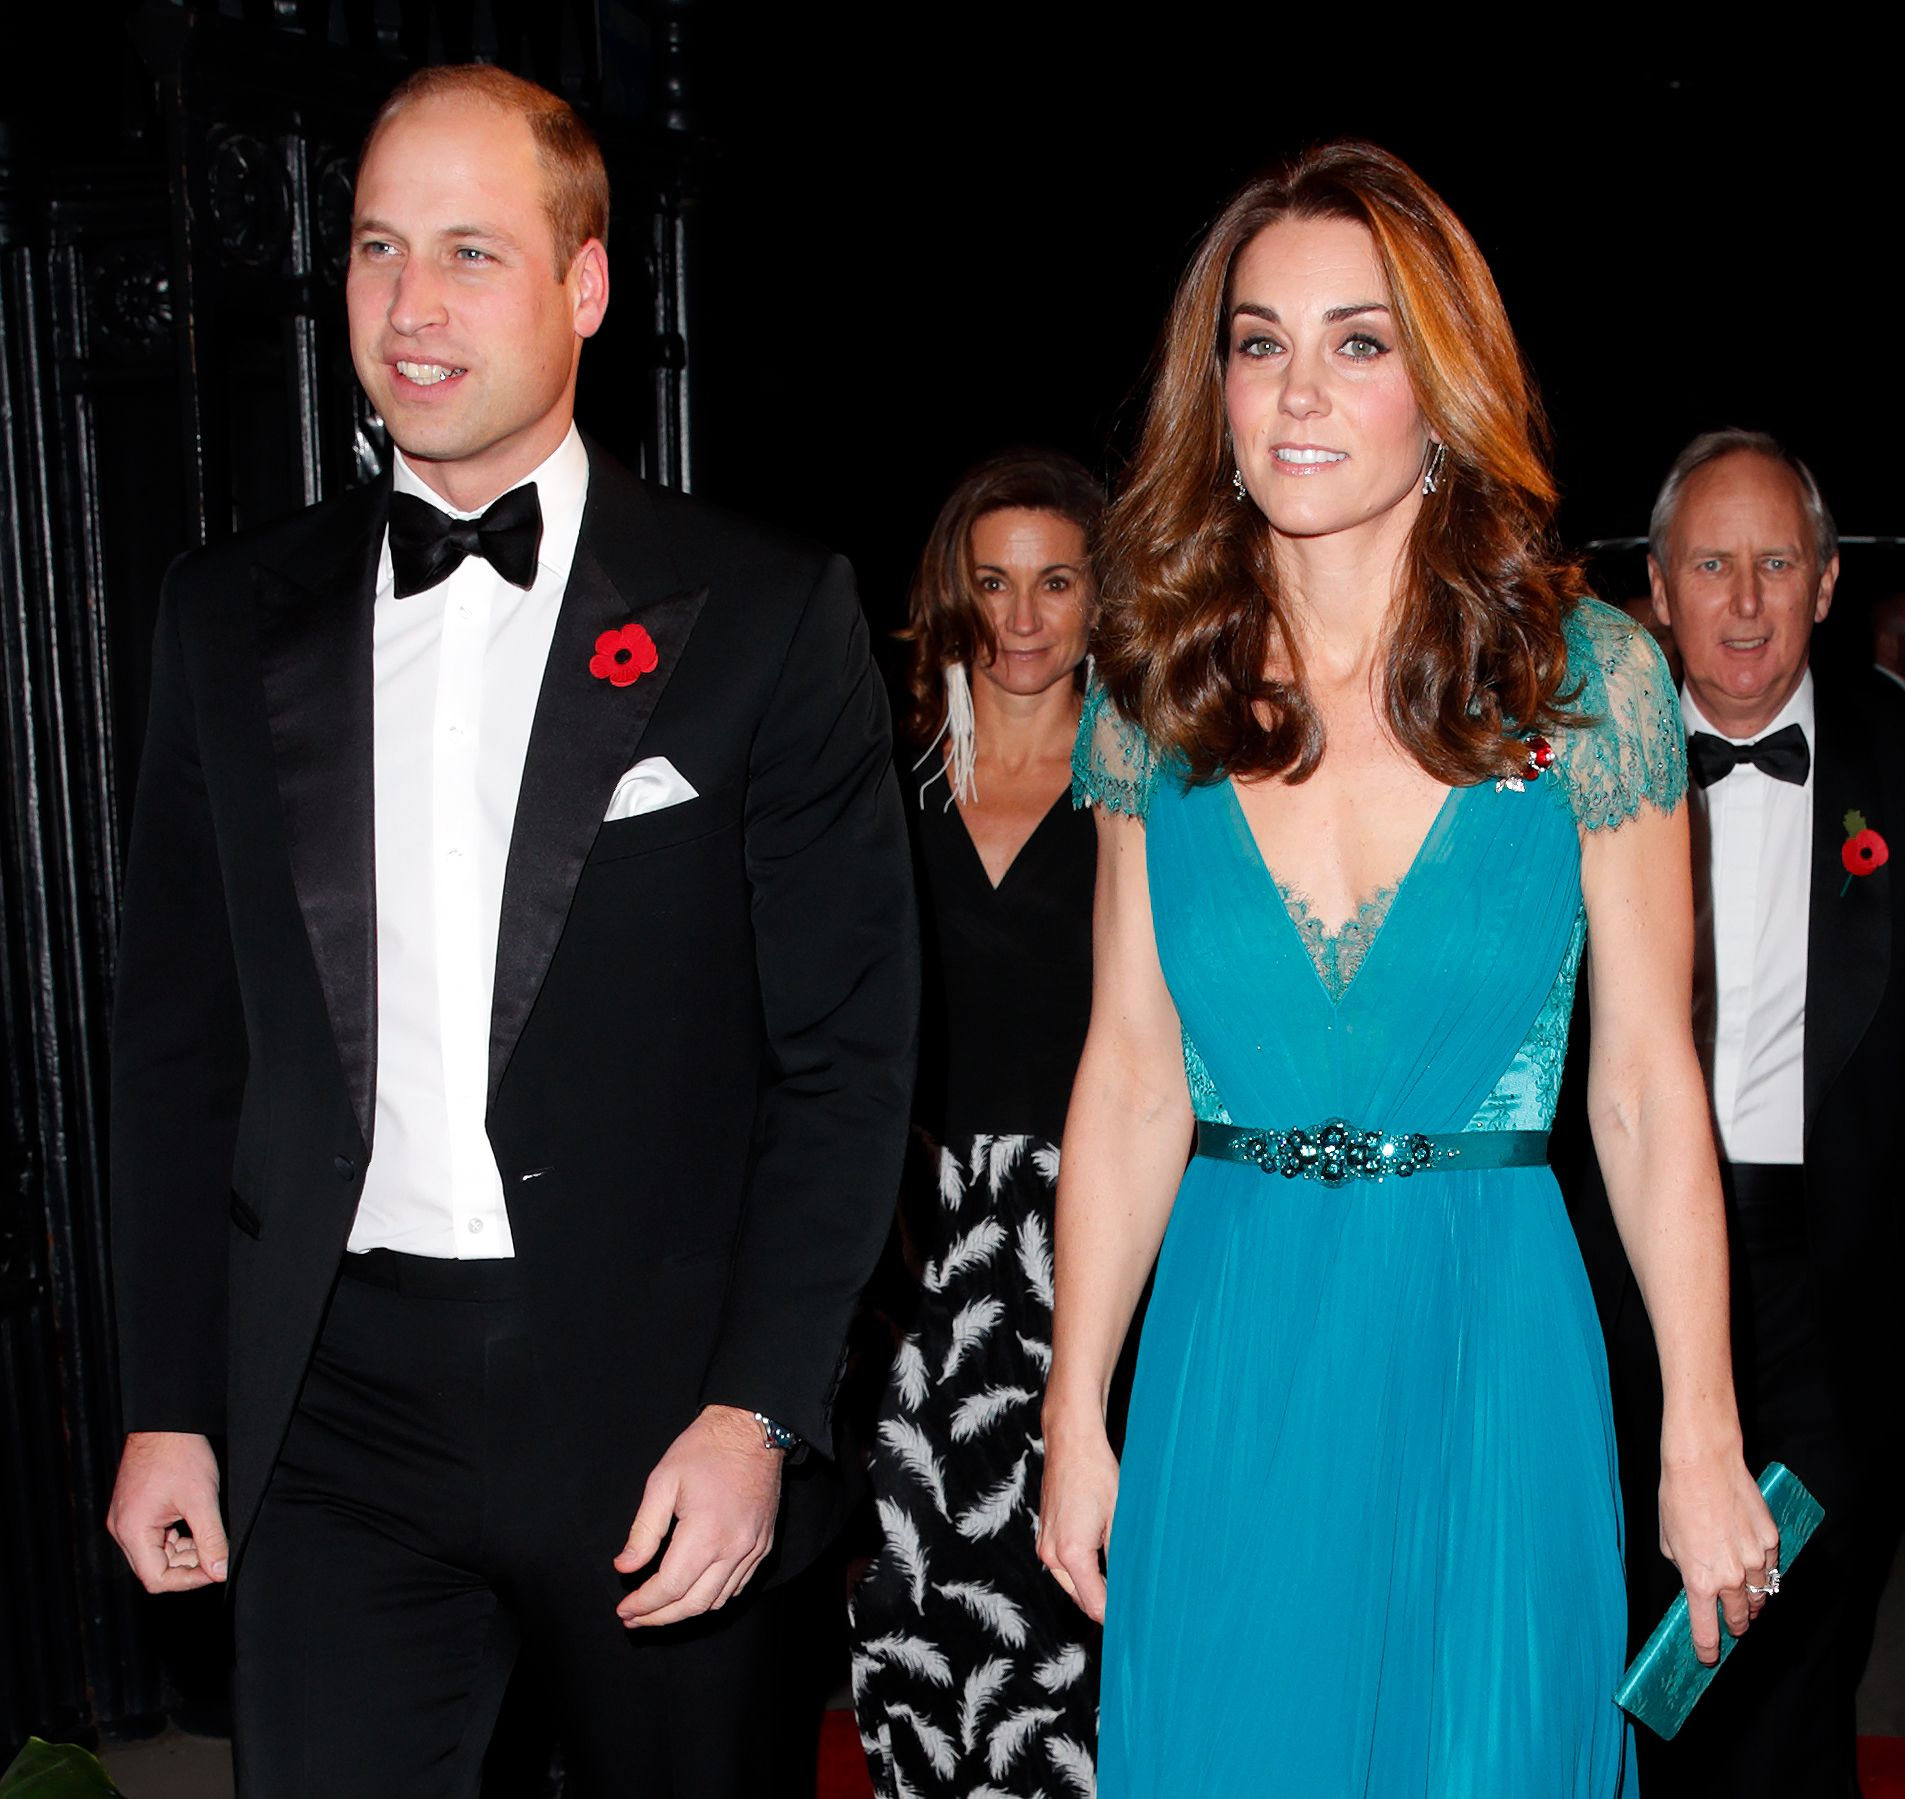 Why Kate Middleton Pulled Out of Her Tusk Awards Appearance Last Minute